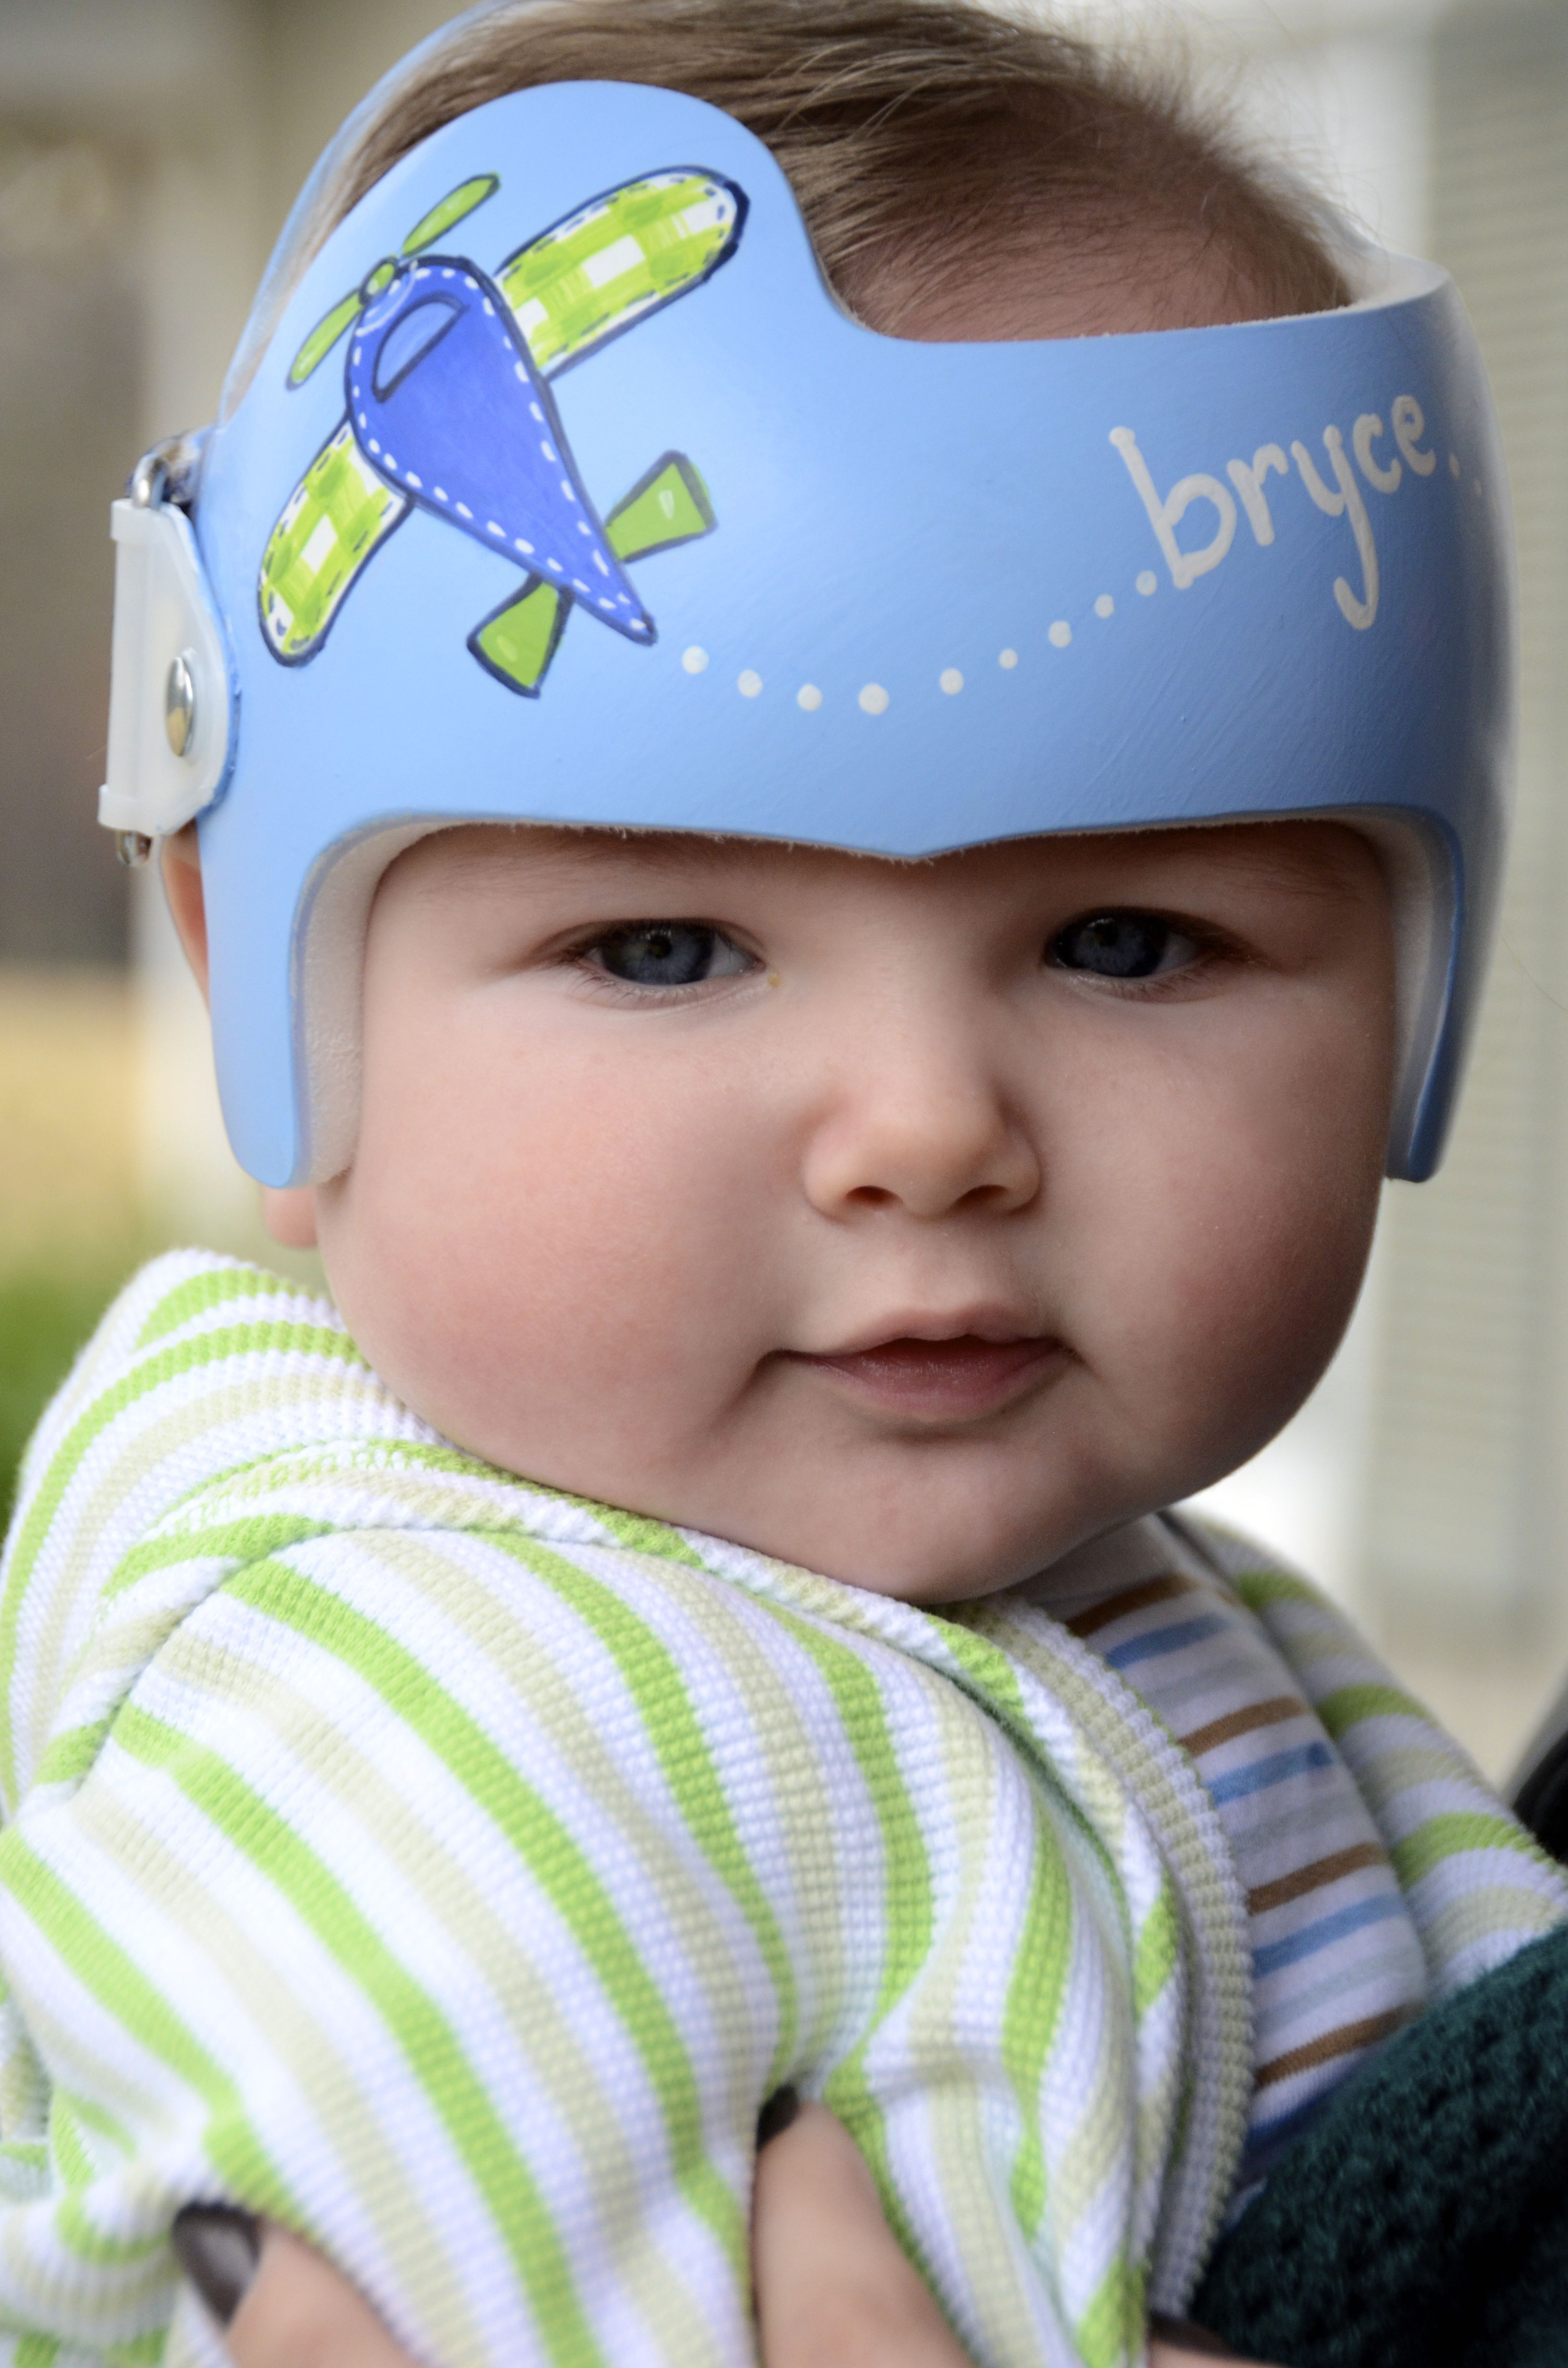 Pin By Leigh Gibson On Cranial Bands Helmets Doc Band Baby Helmet Baby Helmet Design